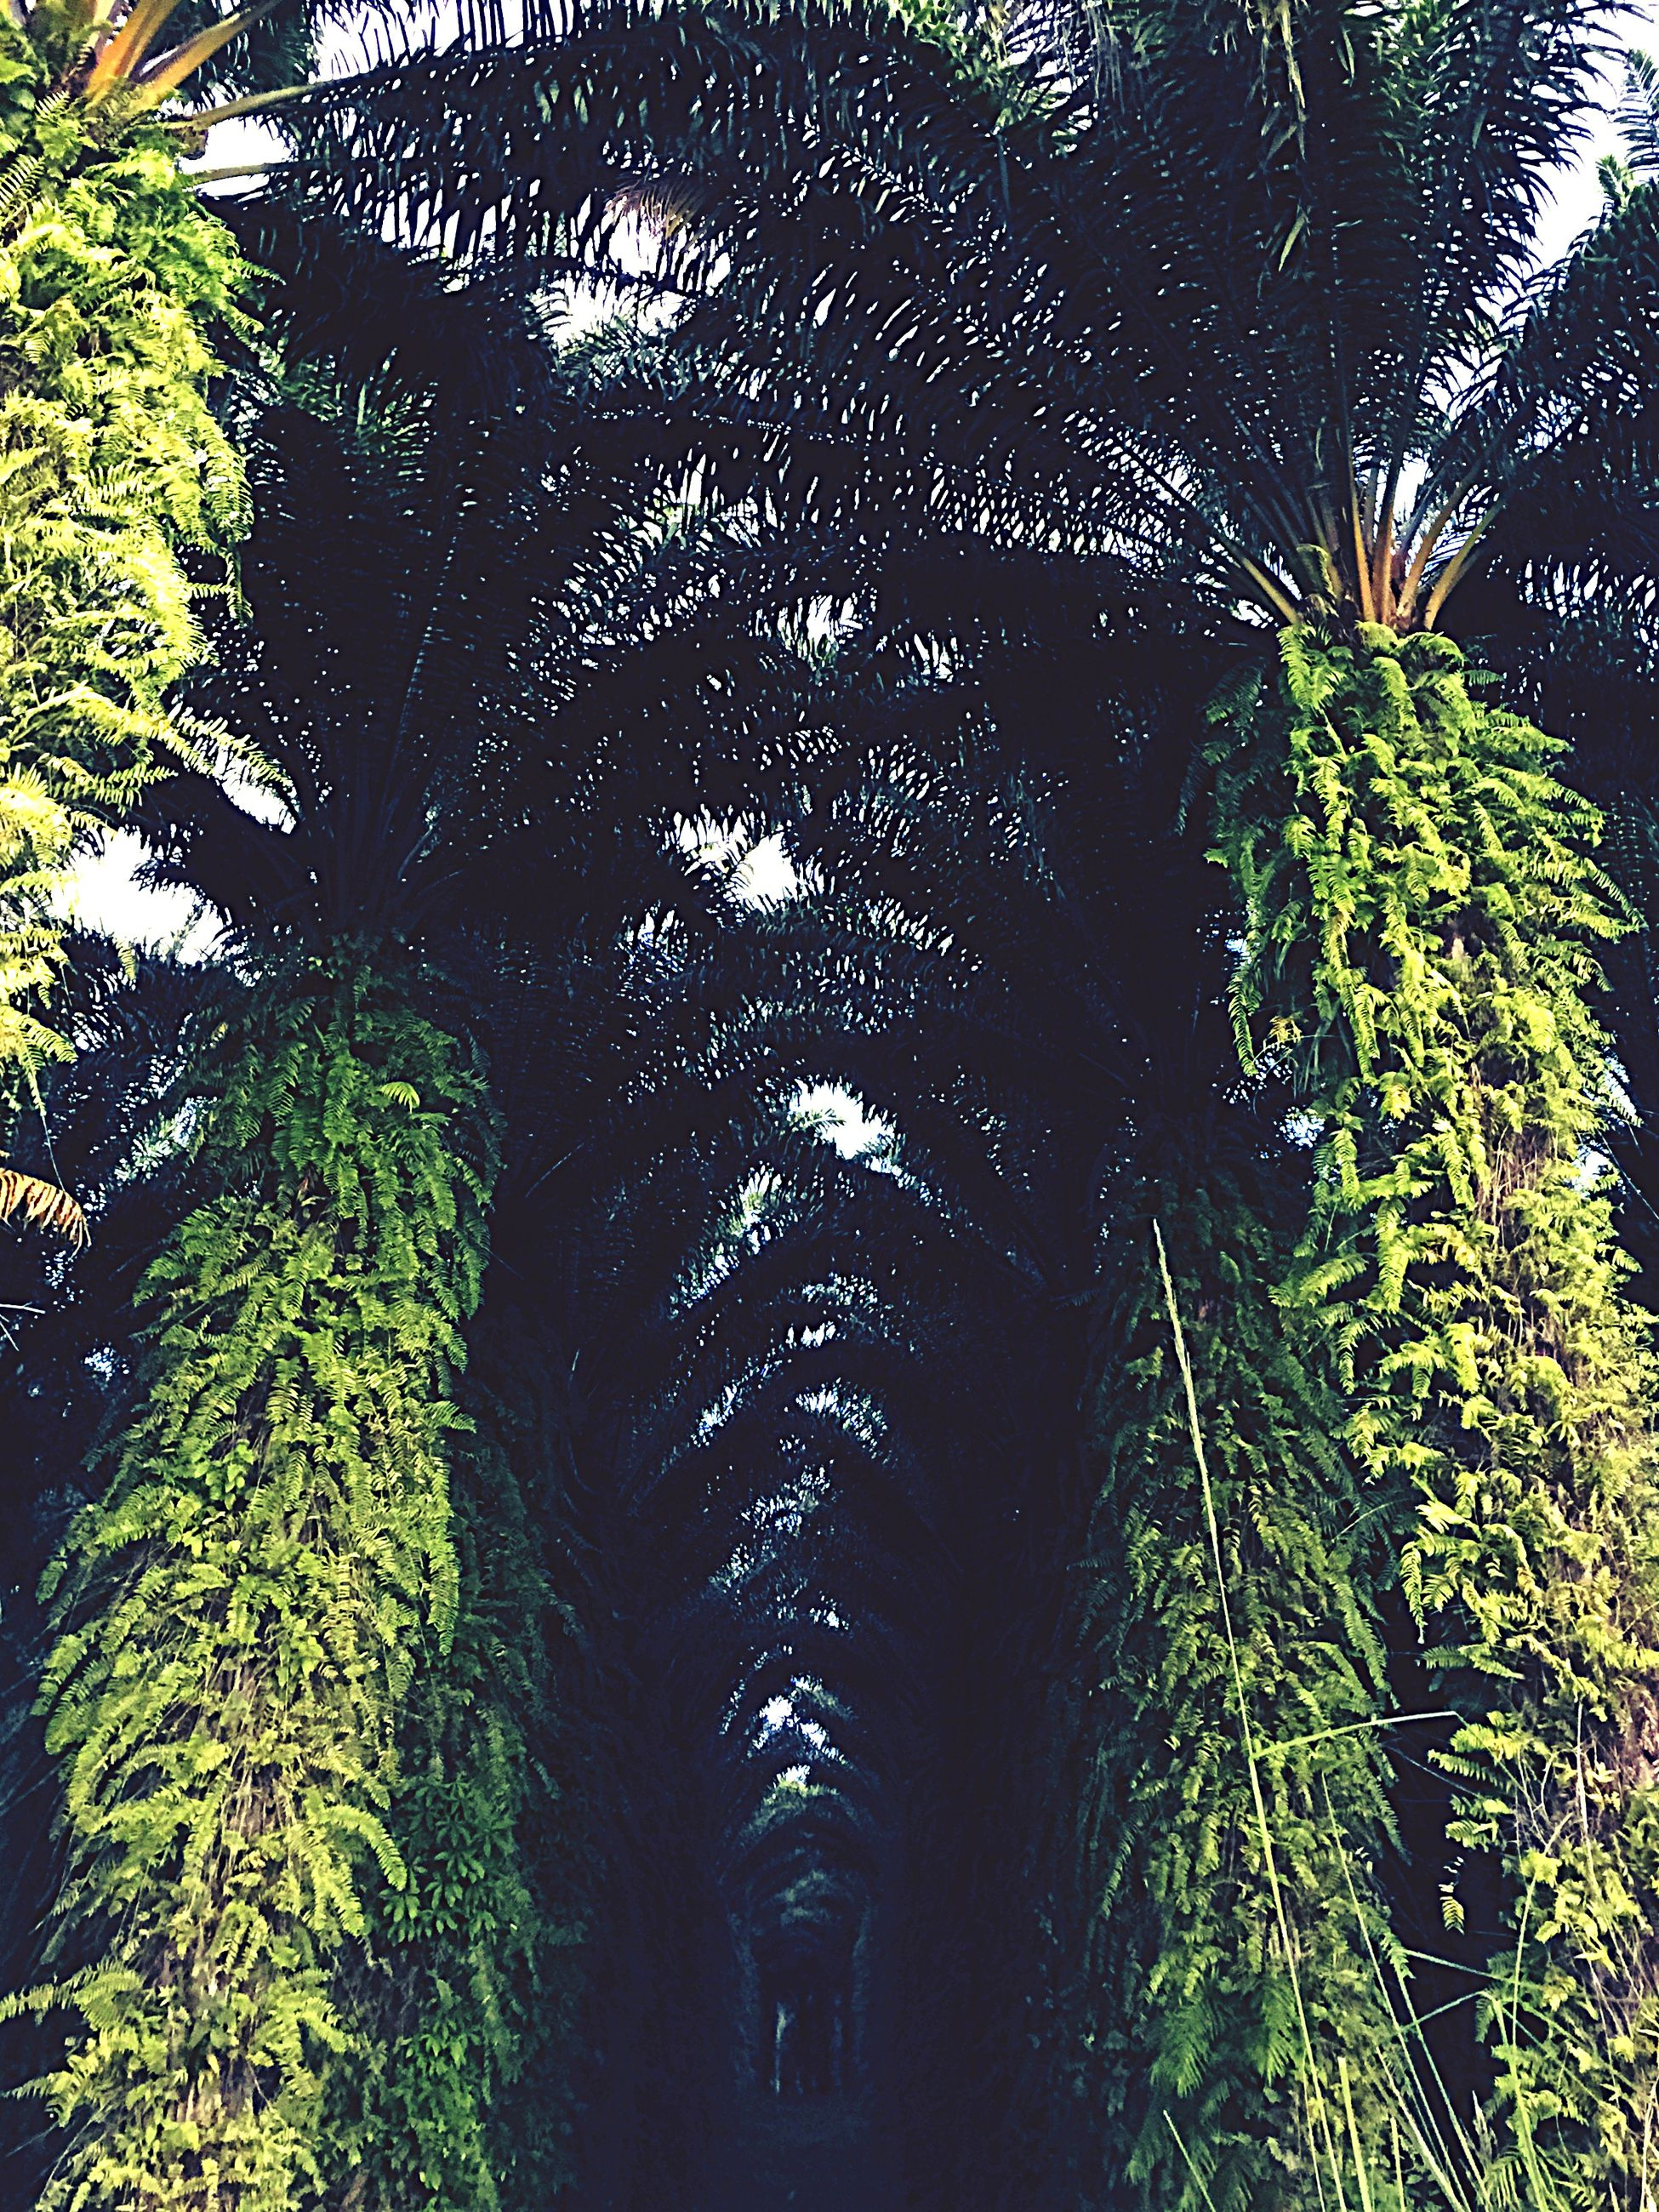 tree, growth, green color, plant, branch, nature, leaf, tranquility, sunlight, tree trunk, low angle view, day, lush foliage, outdoors, no people, green, palm tree, shadow, beauty in nature, sky